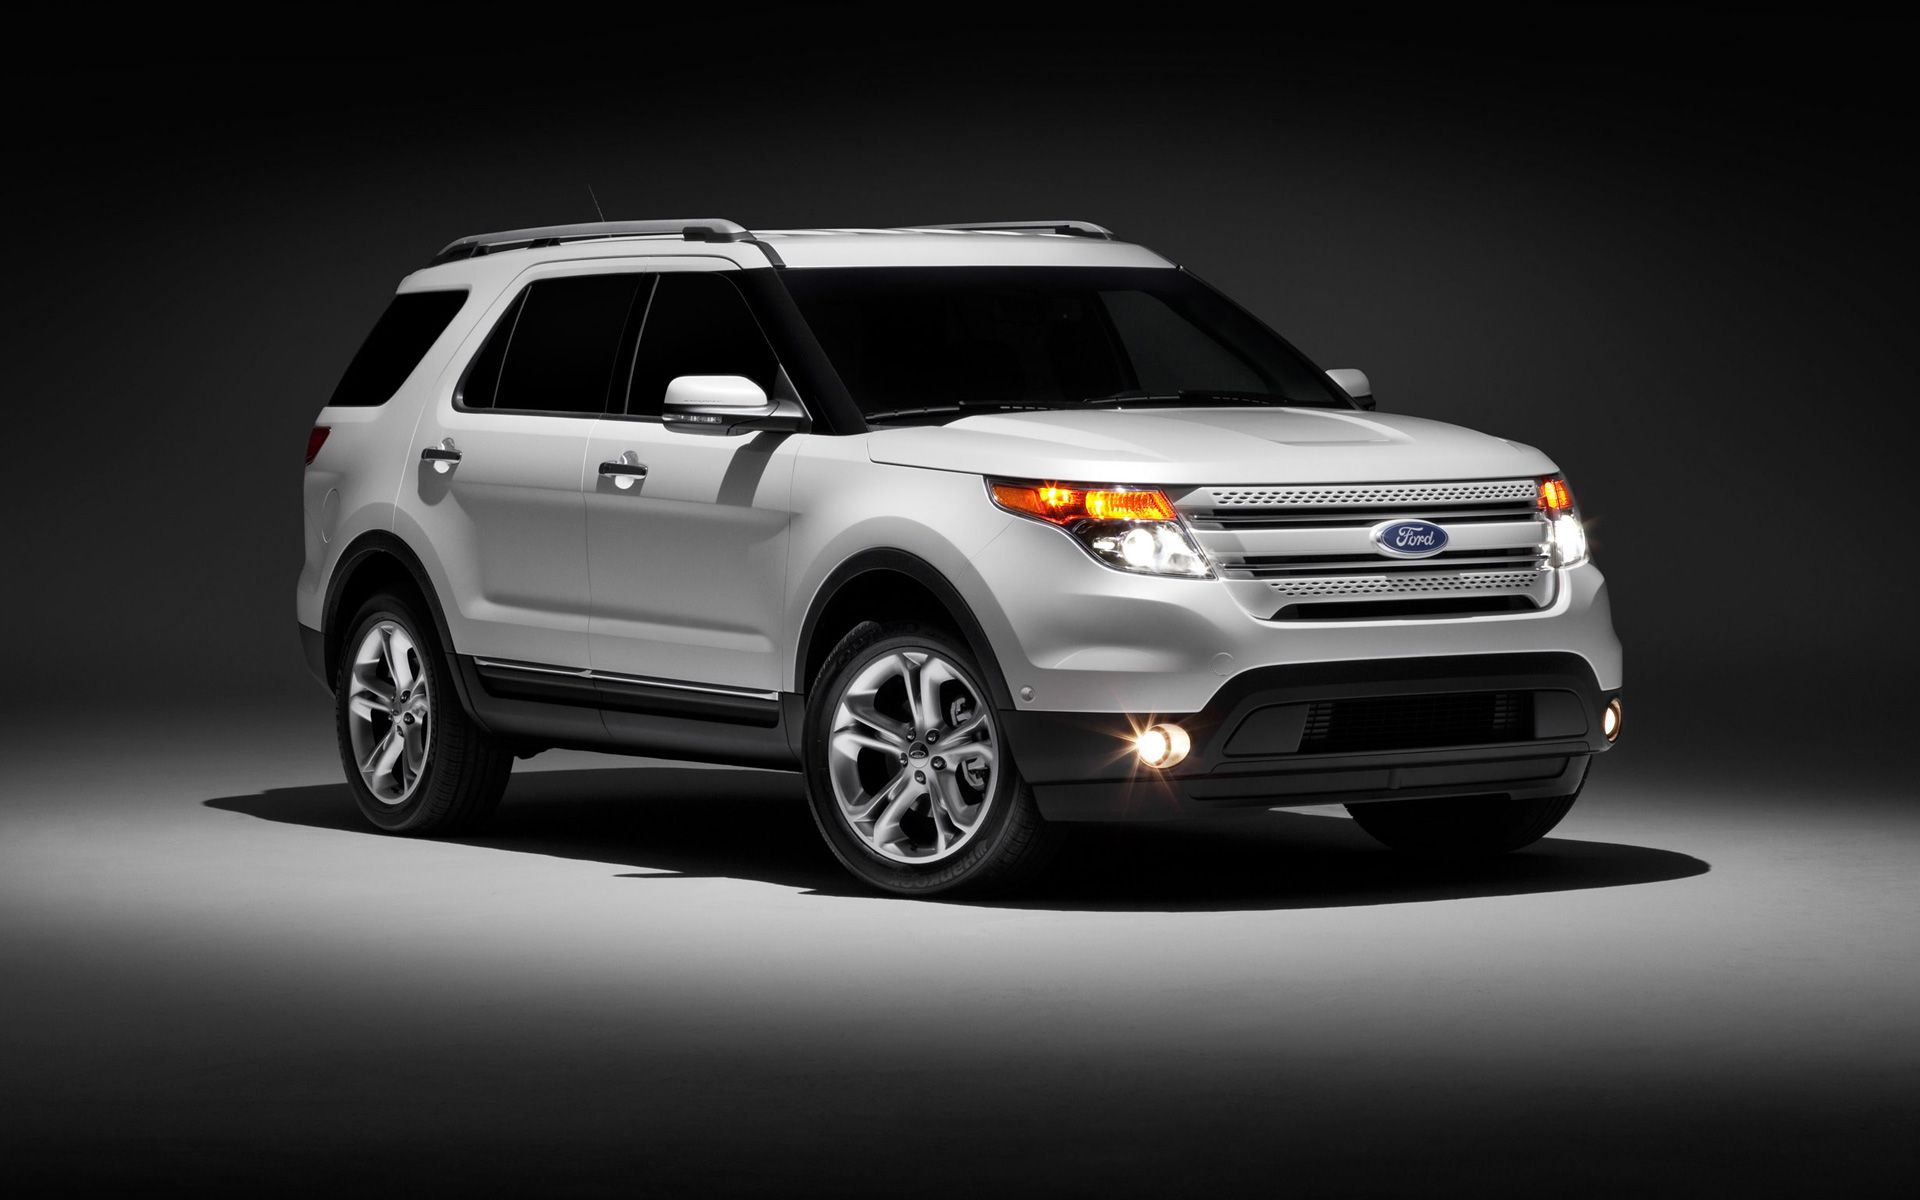 Ford explorer xlt we really need a new suv